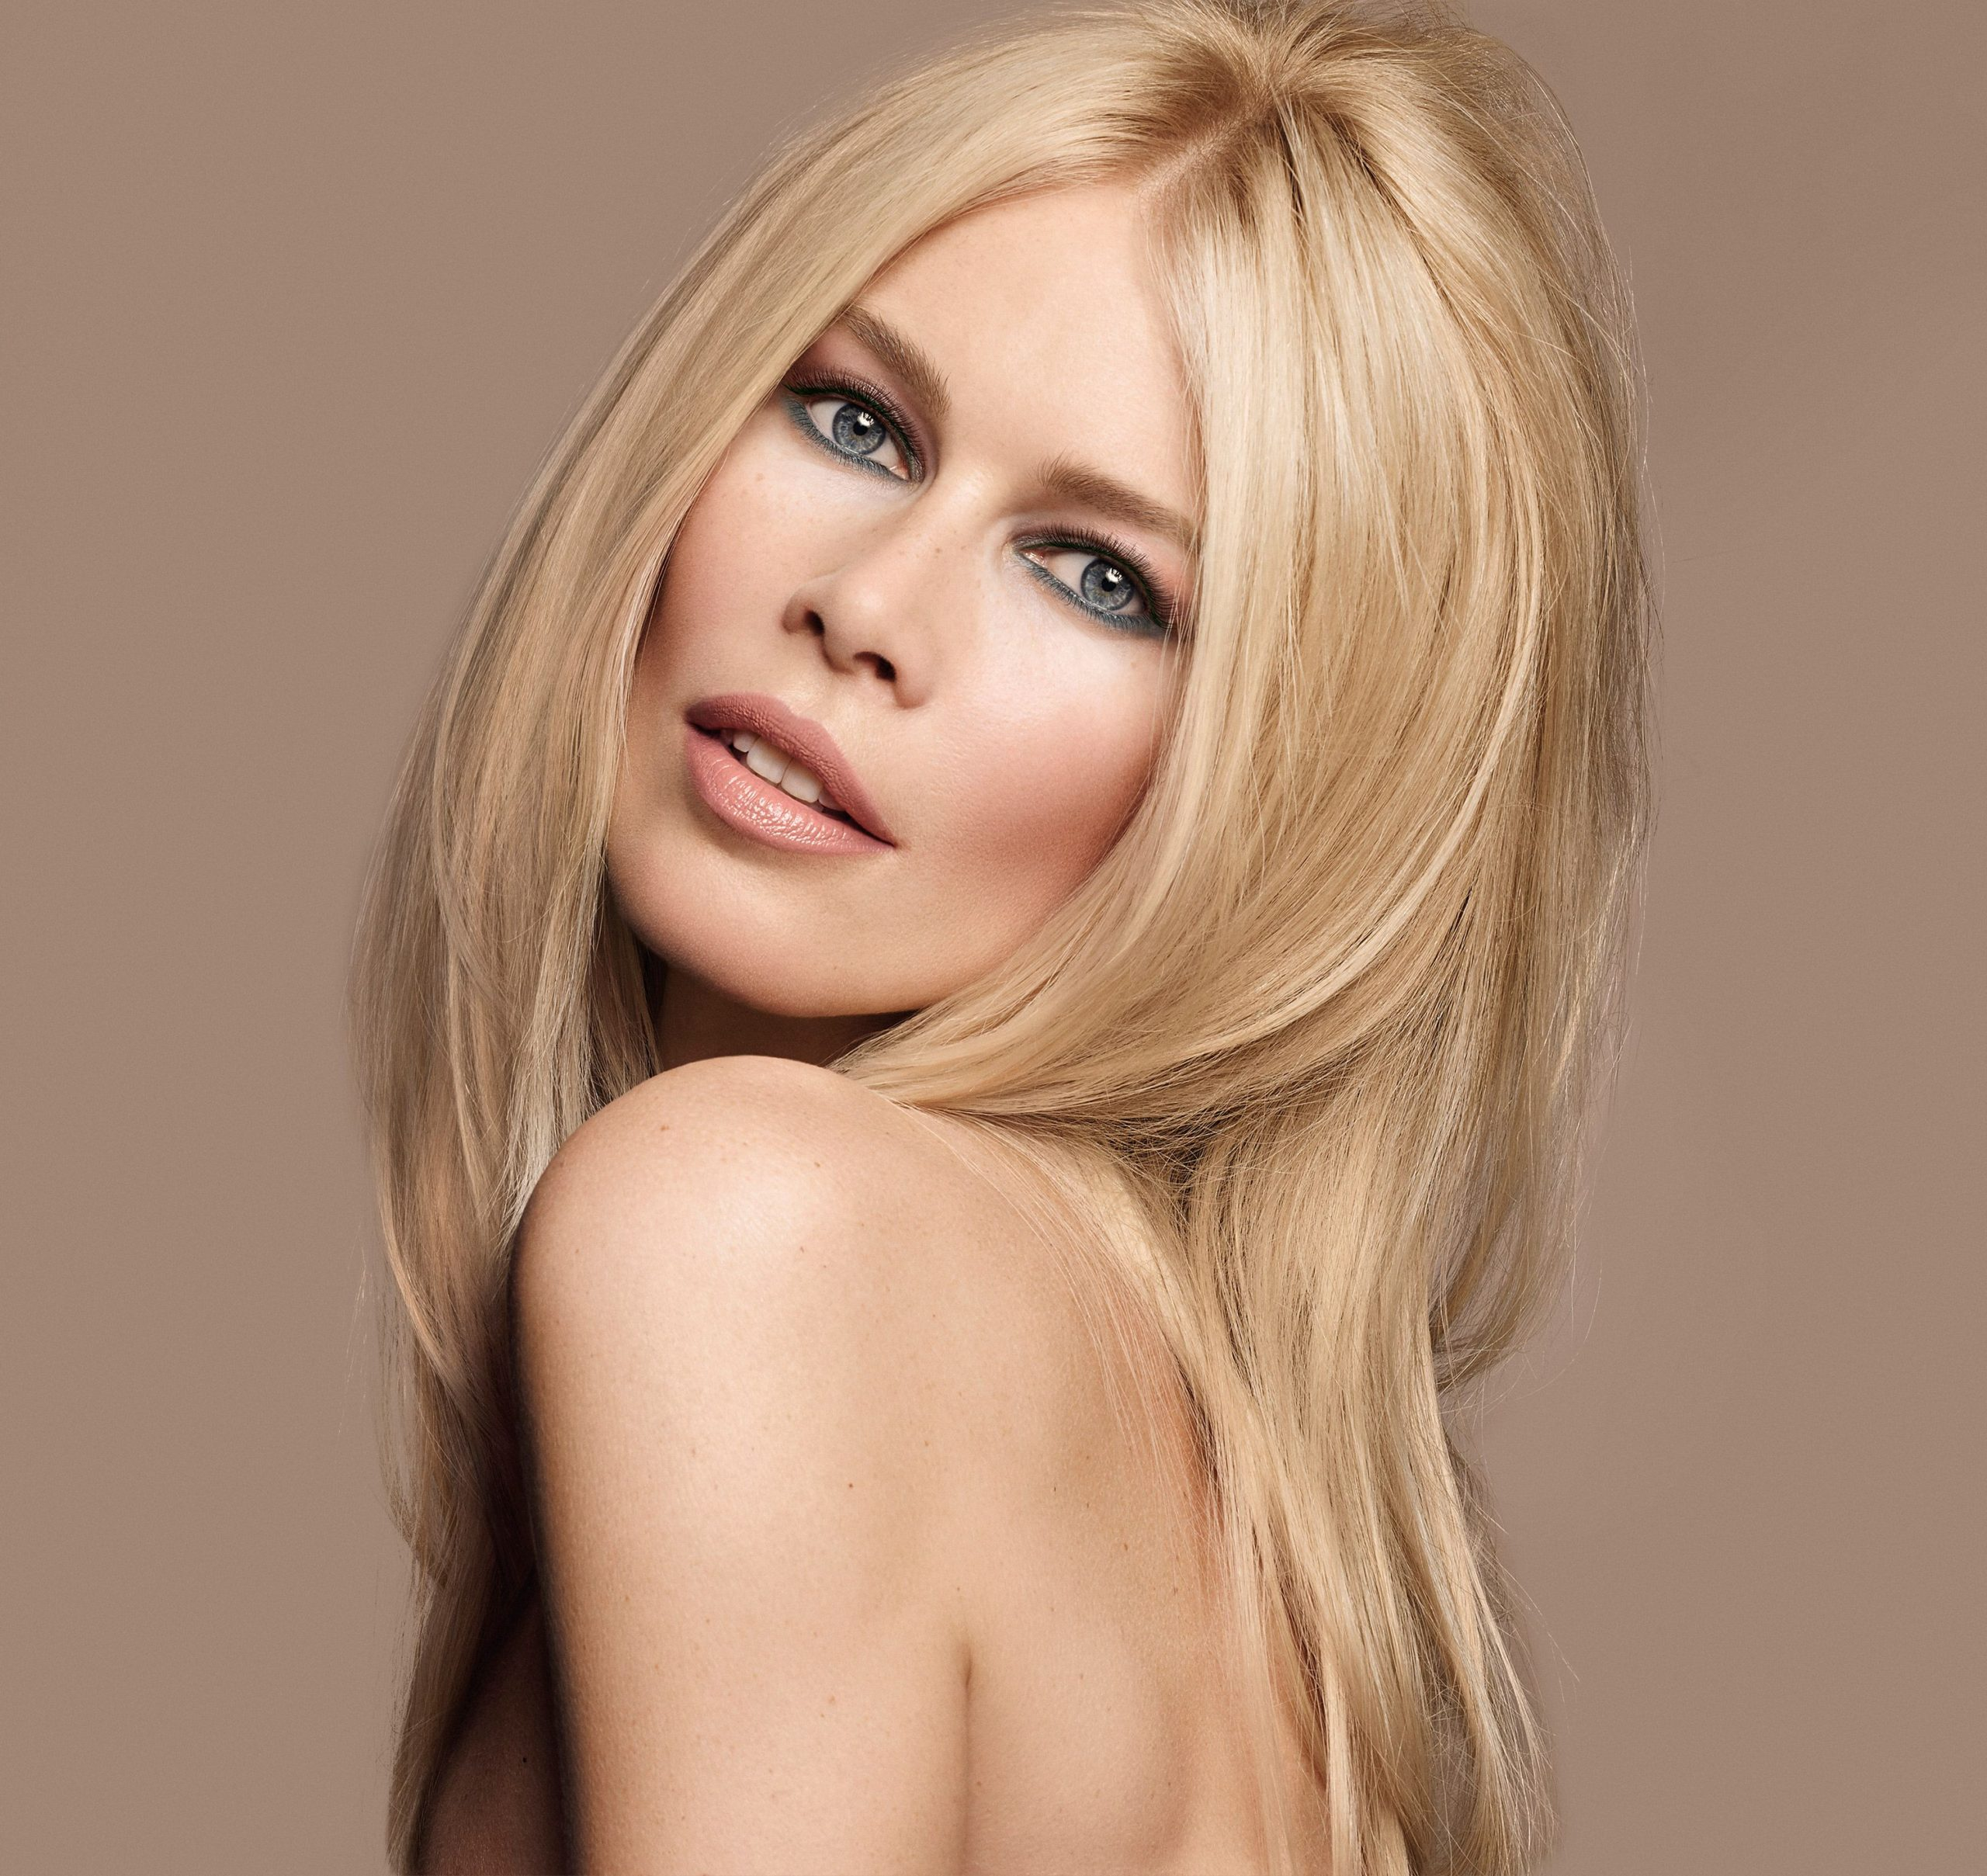 Perfect Beauty Claudia Schiffer scaled - Claudia Schiffer Net Worth, Pics, Wallpapers, Career and Biography